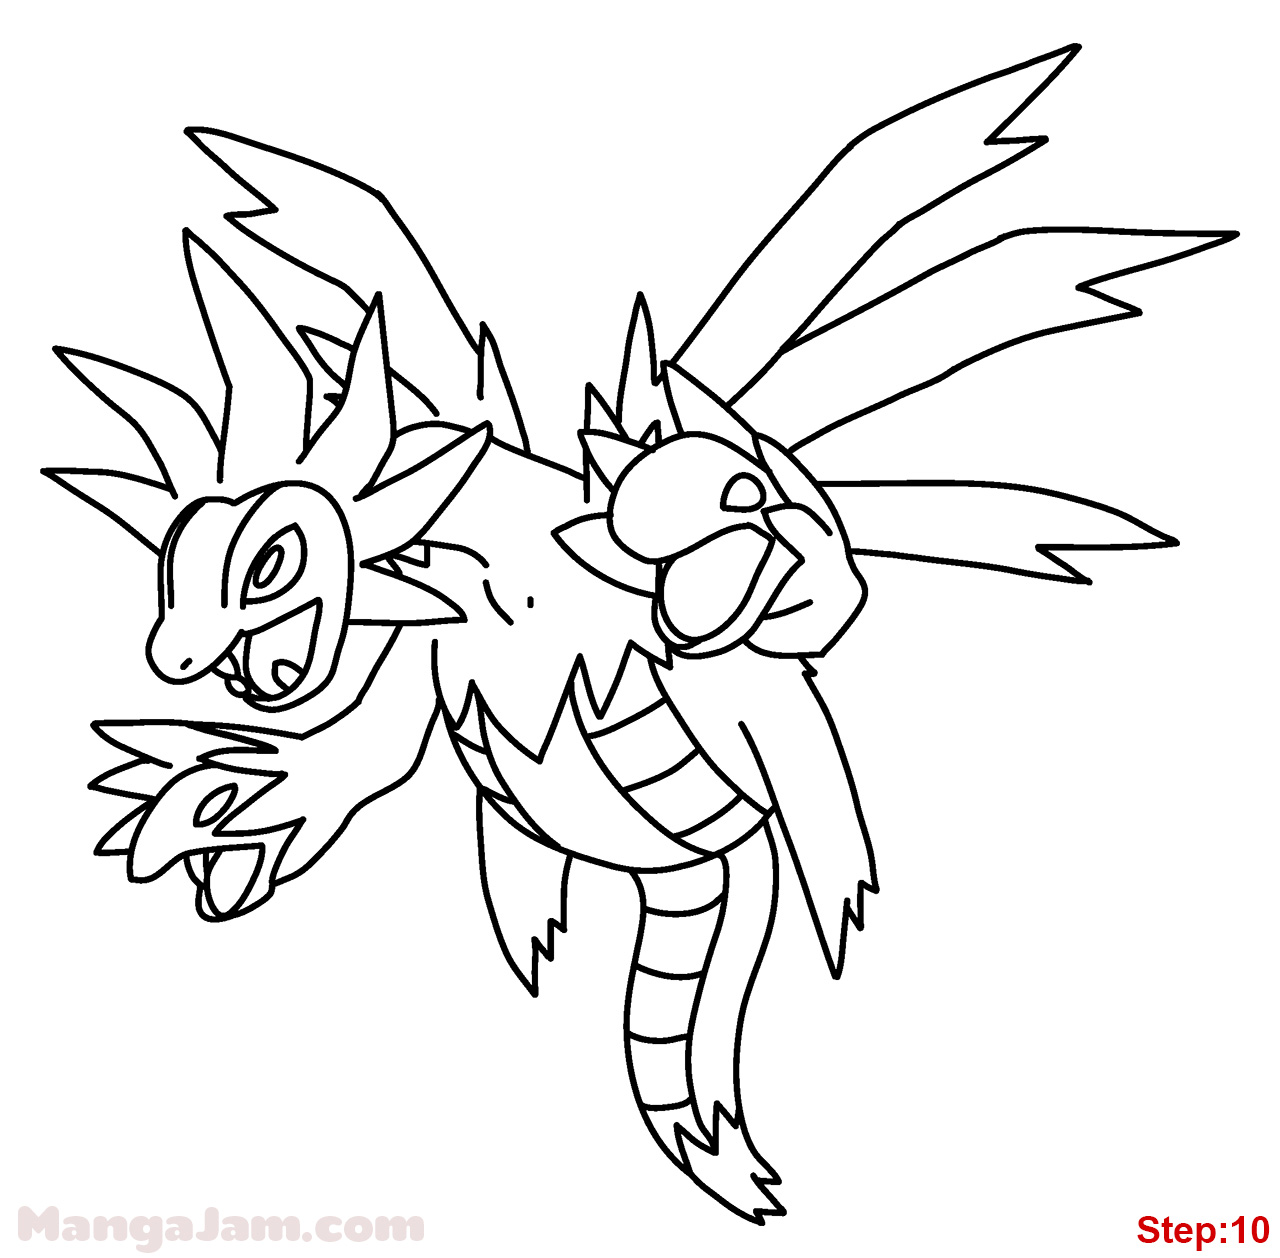 How to Draw Hydreigon from Pokemon - Mangajam.com